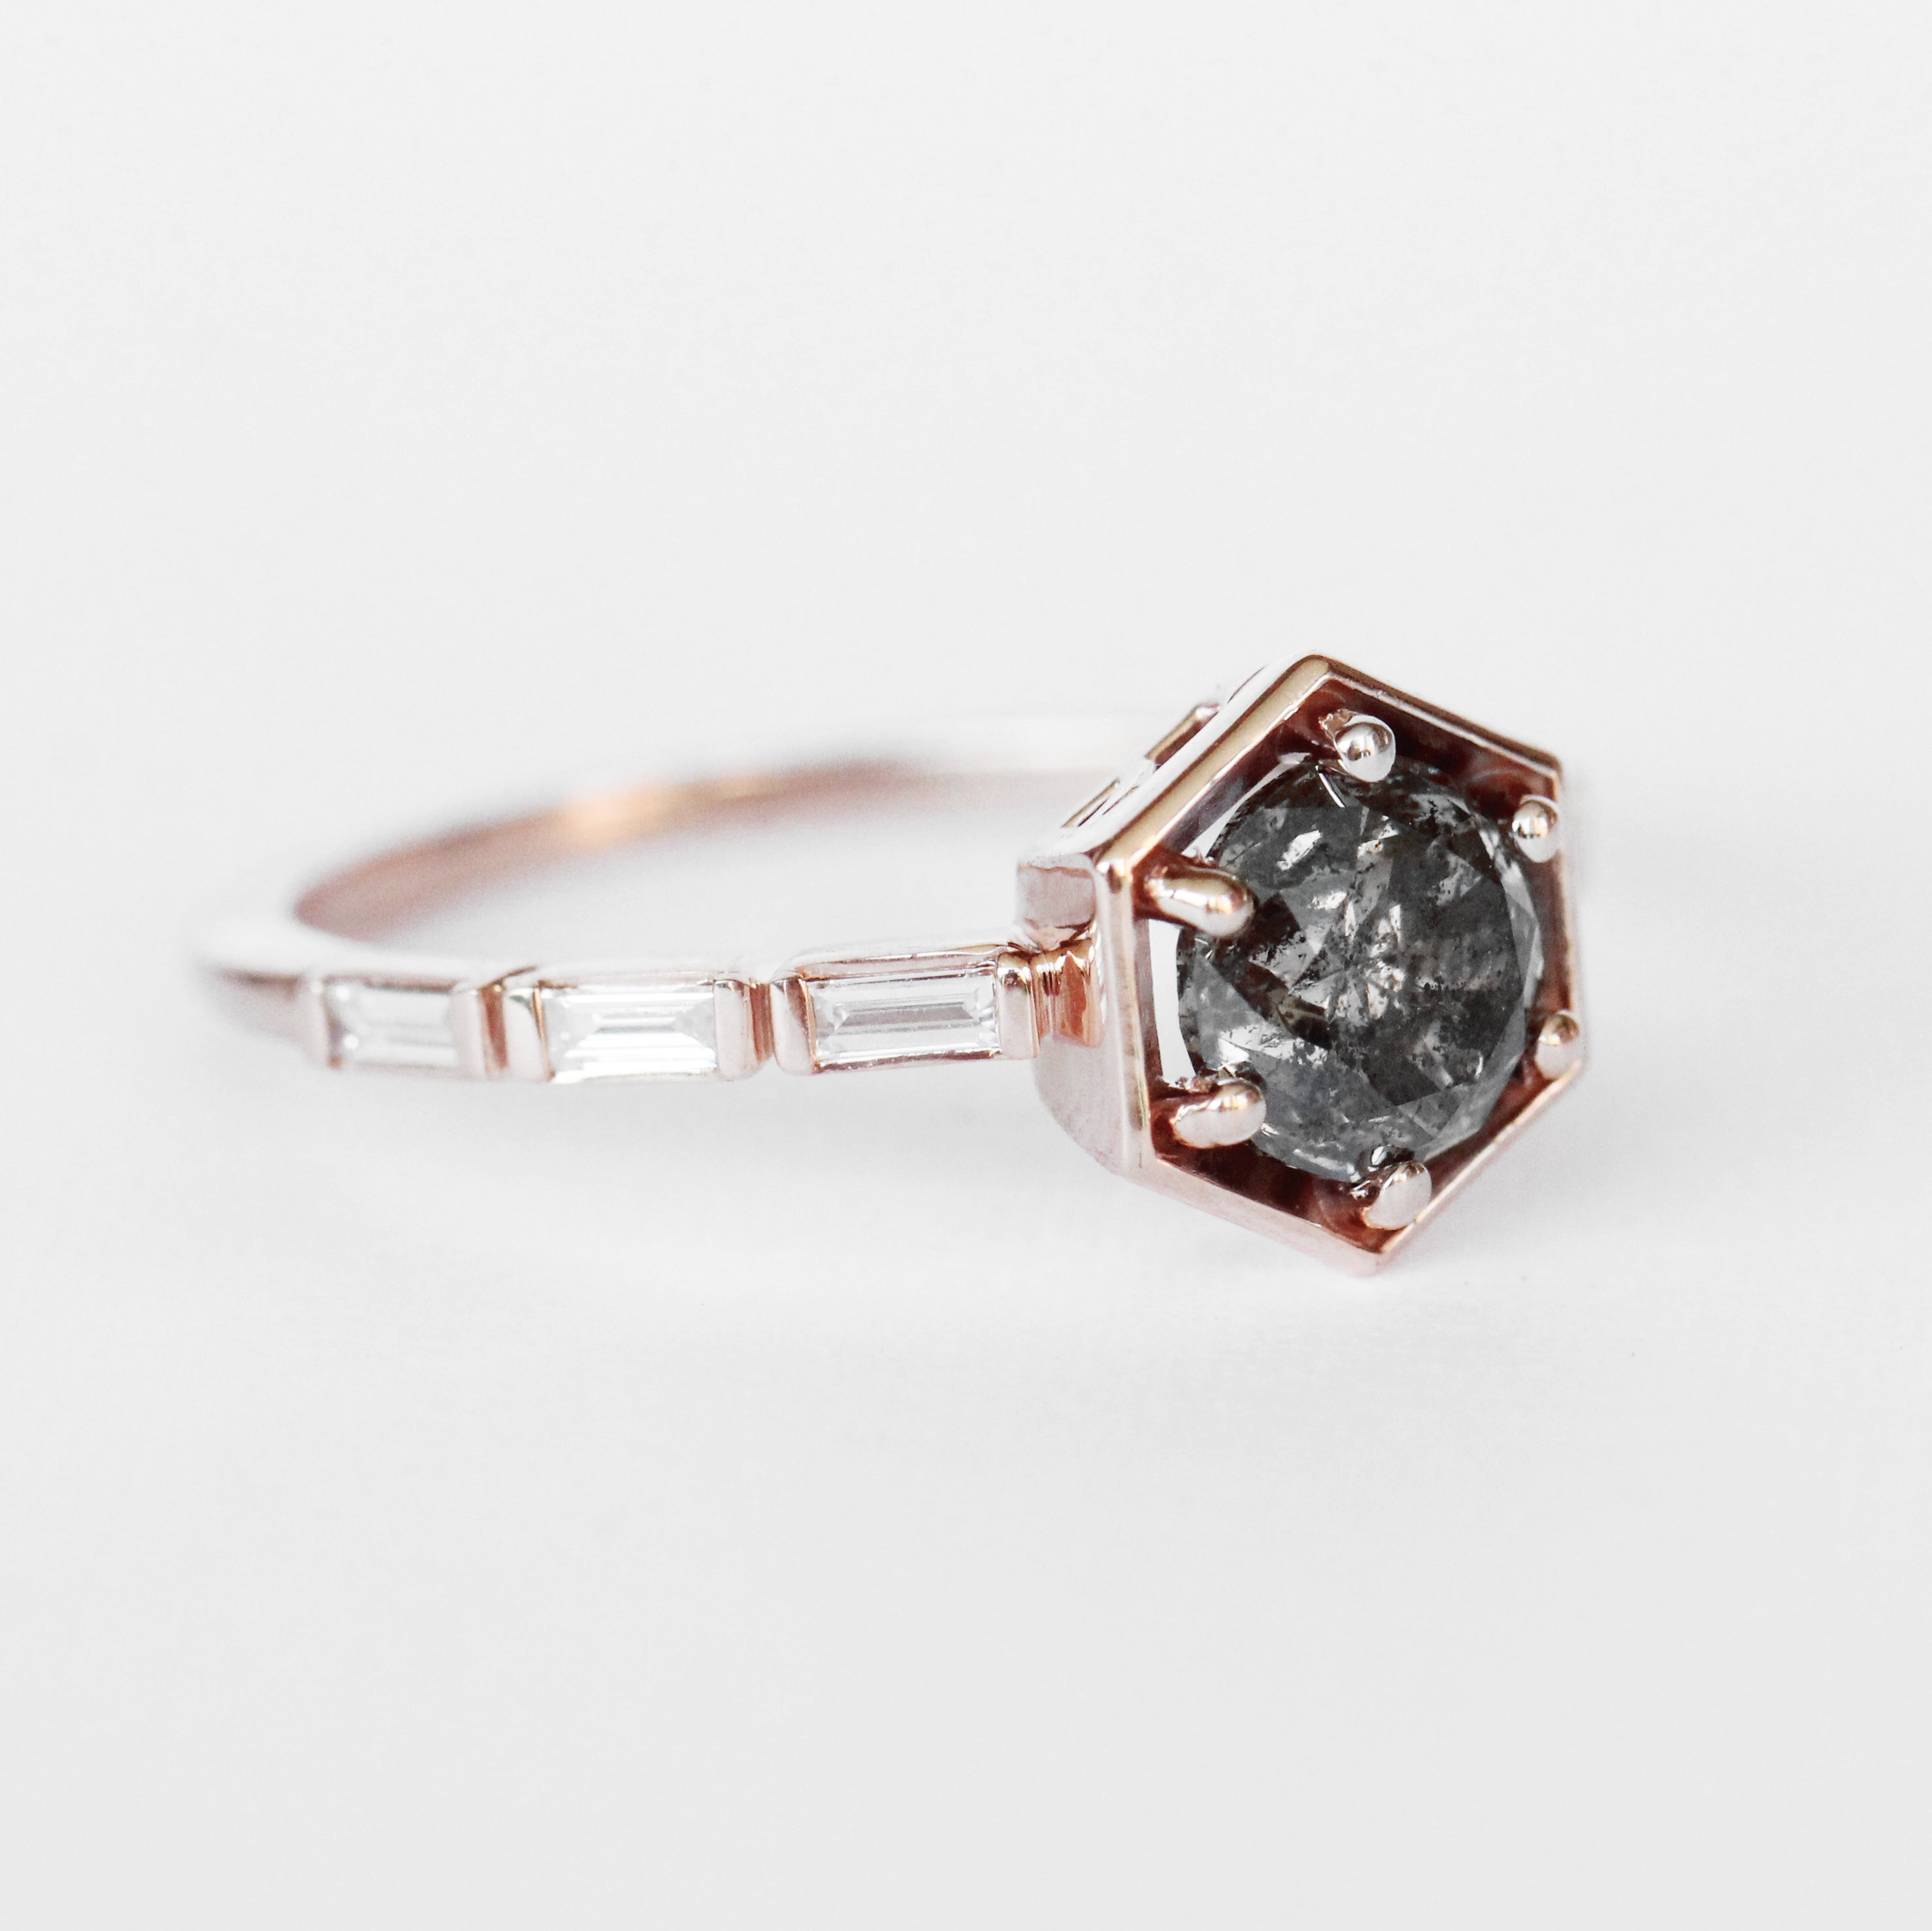 Lennen Ring with a Champagne Celestial and Diamond Accents in 10k Rose Gold - Ready to Size and Ship - Salt & Pepper Celestial Diamond Engagement Rings and Wedding Bands  by Midwinter Co.